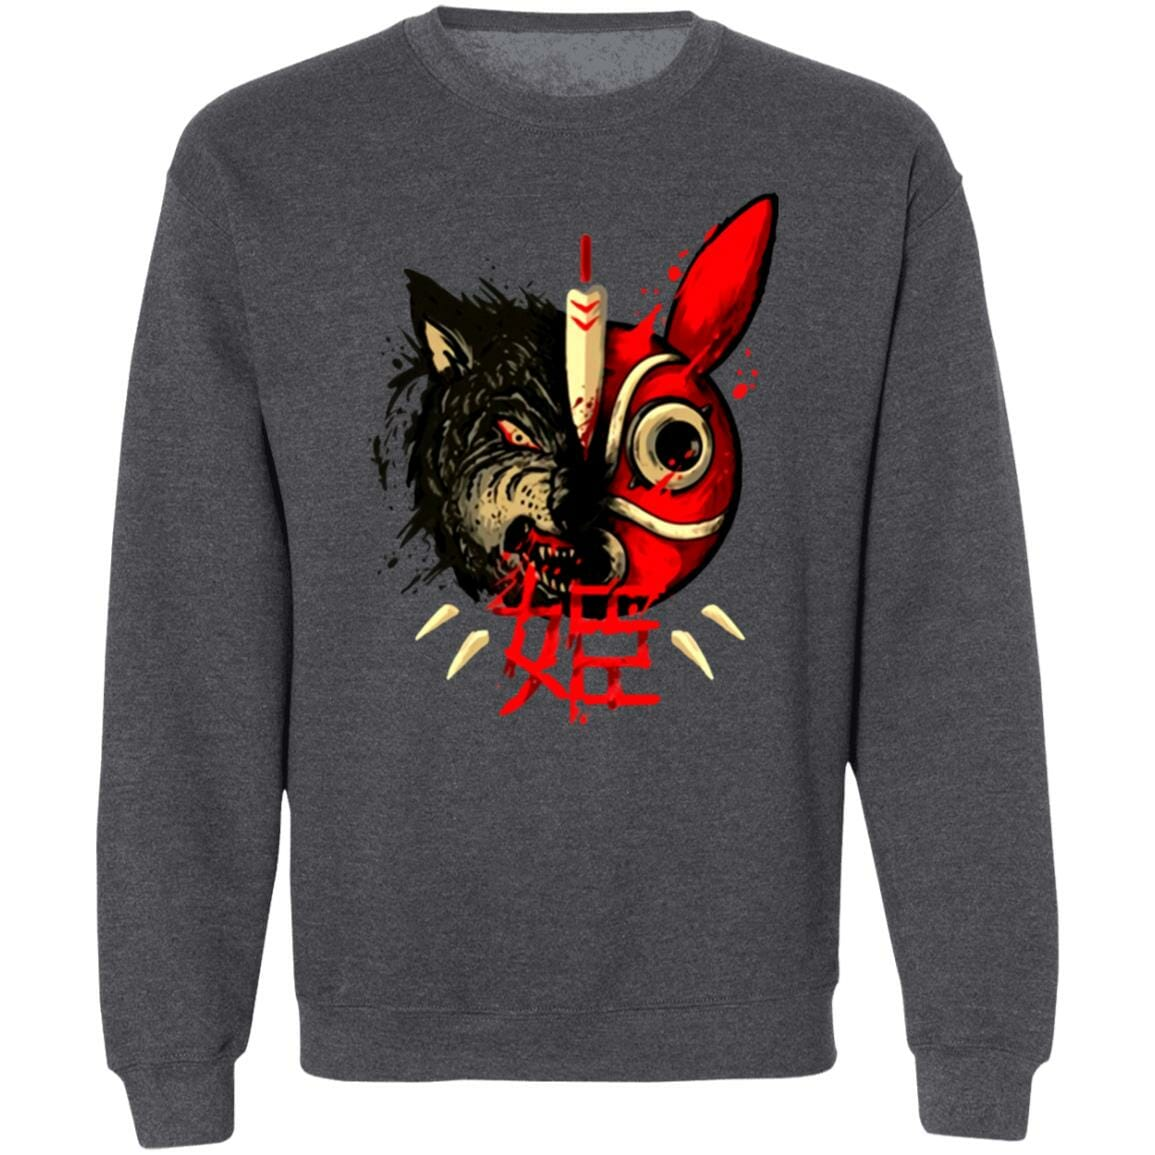 Princess Mononoke Mask & Wolf Sweatshirt